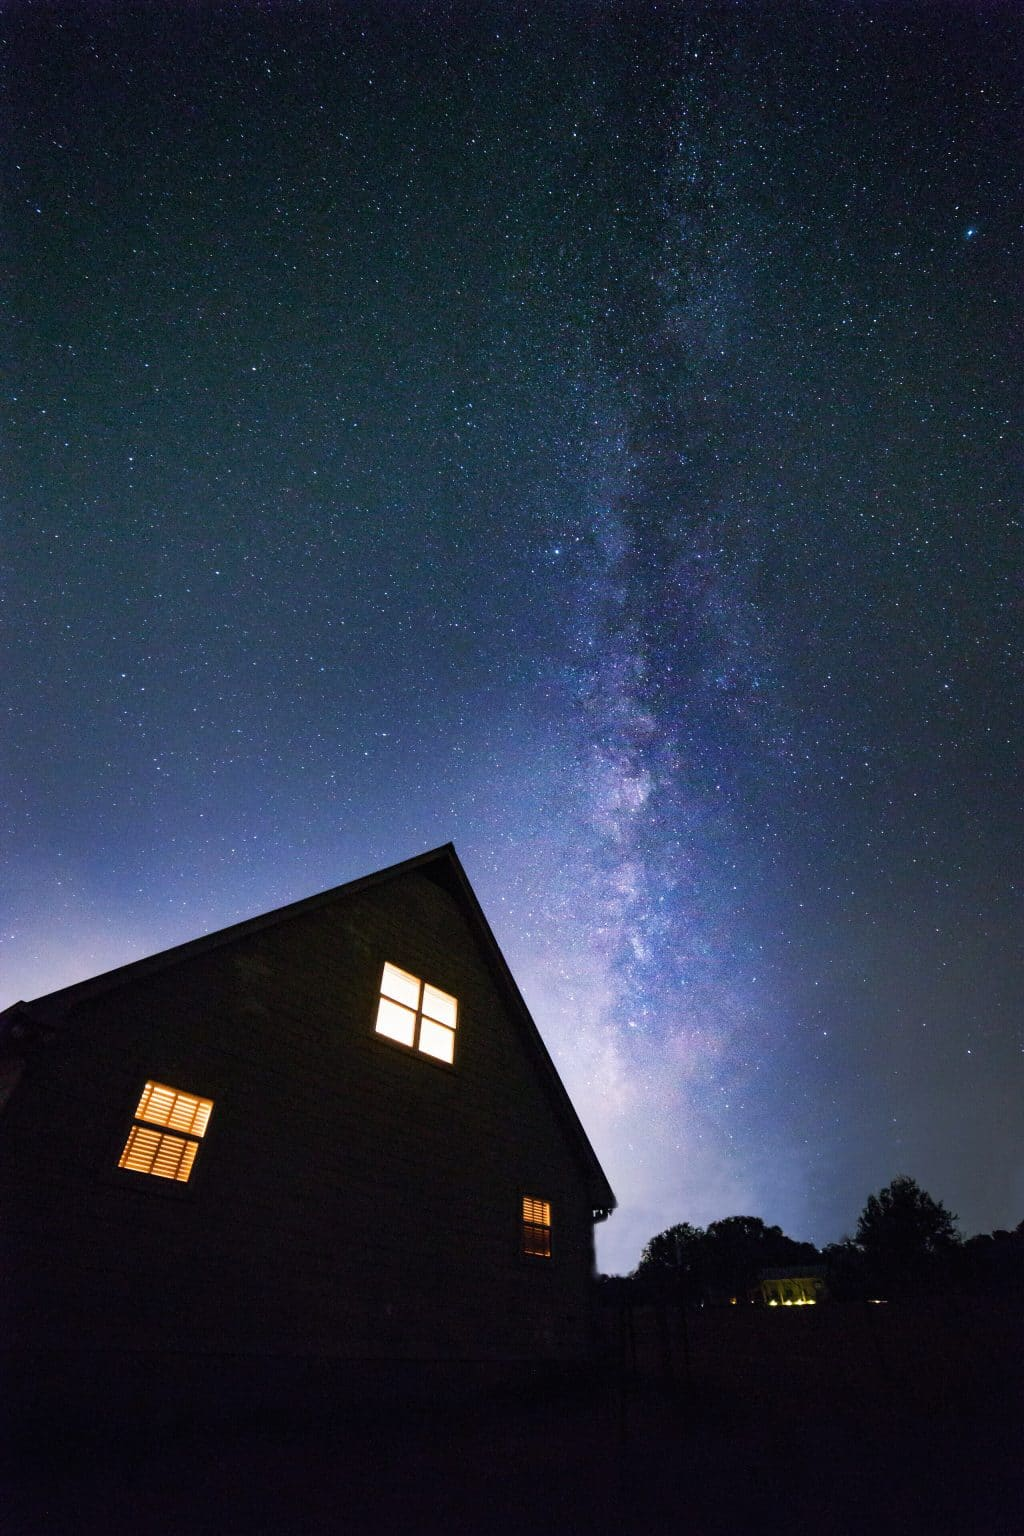 Milky Way over a house